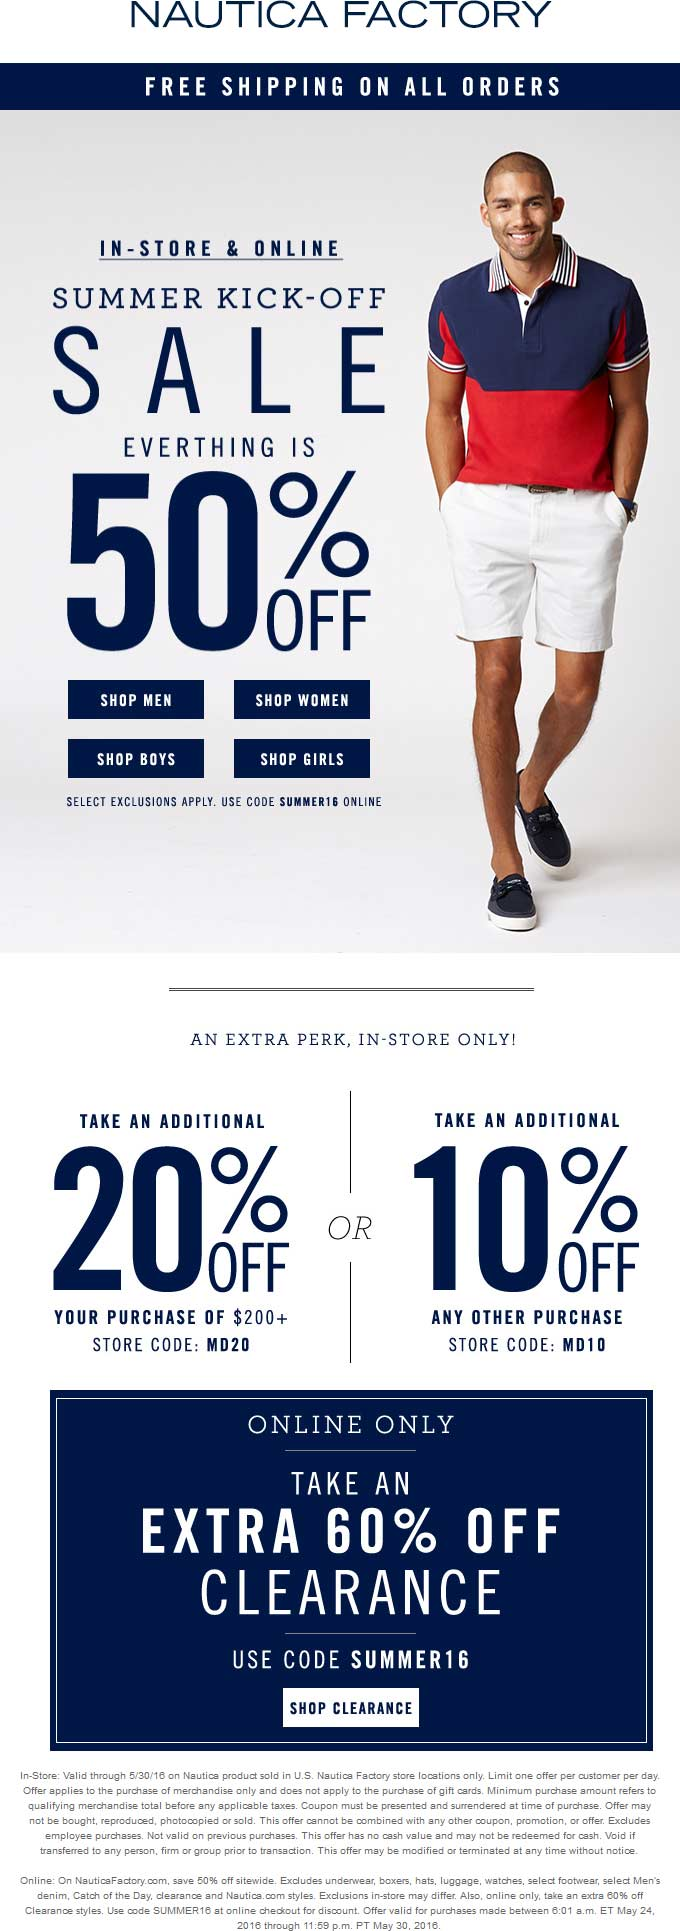 Nautica Factory Coupon April 2018 Extra 50% off everything + 10-20% more at Nautica Factory, or online via promo code SUMMER16